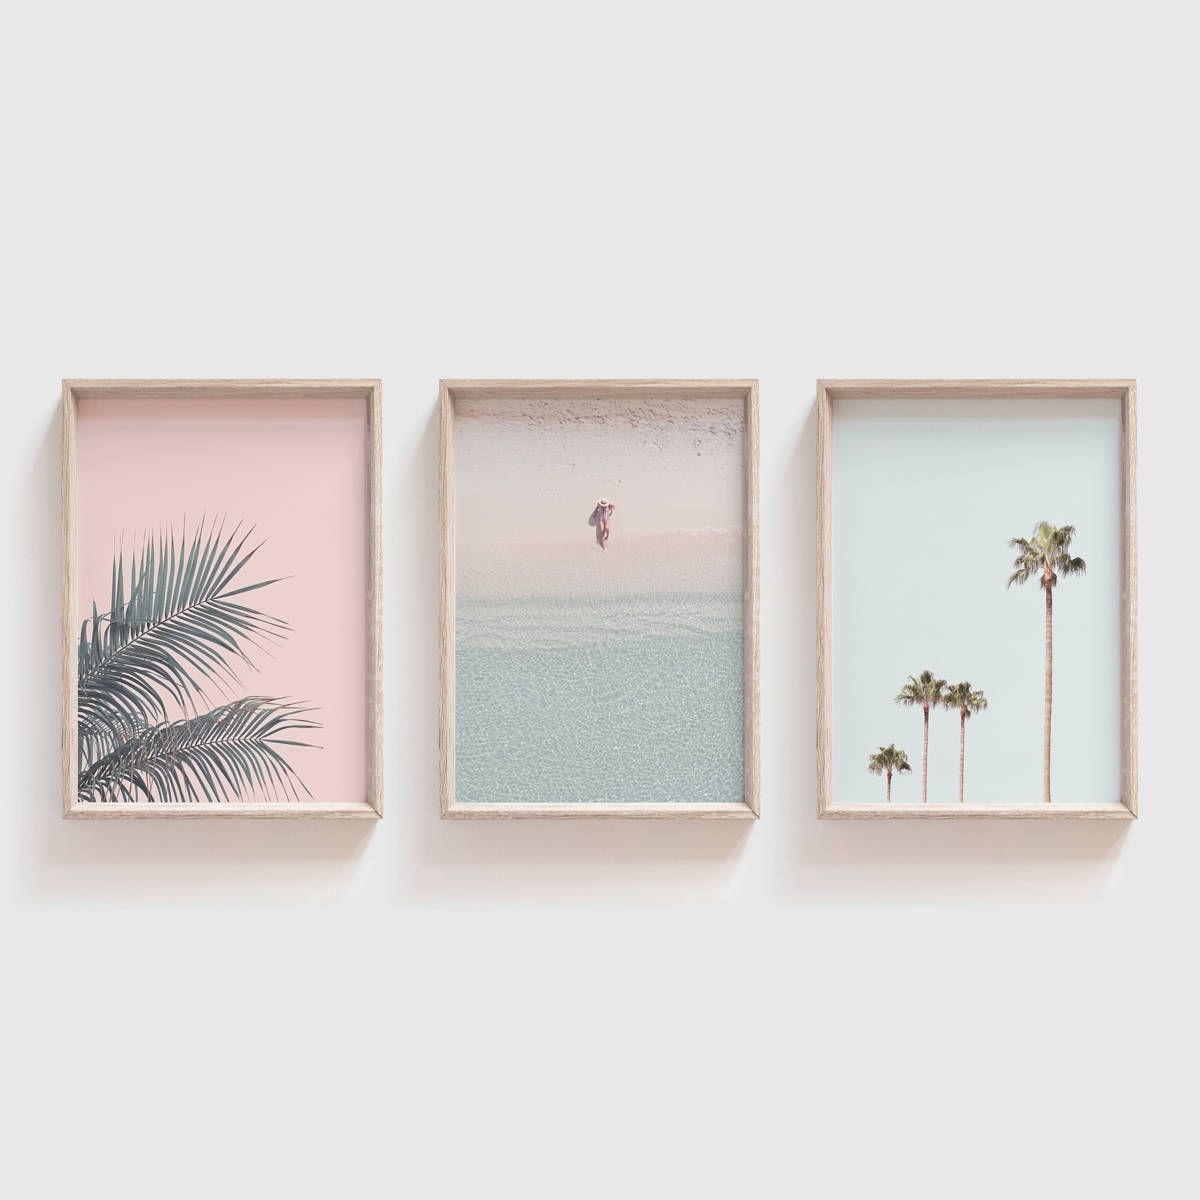 Set Of 3 Printslarge Wall Artpastel Wall Artpastel Etsy Pink Wall Art Pastel Wall Art Beach Wall Art Set